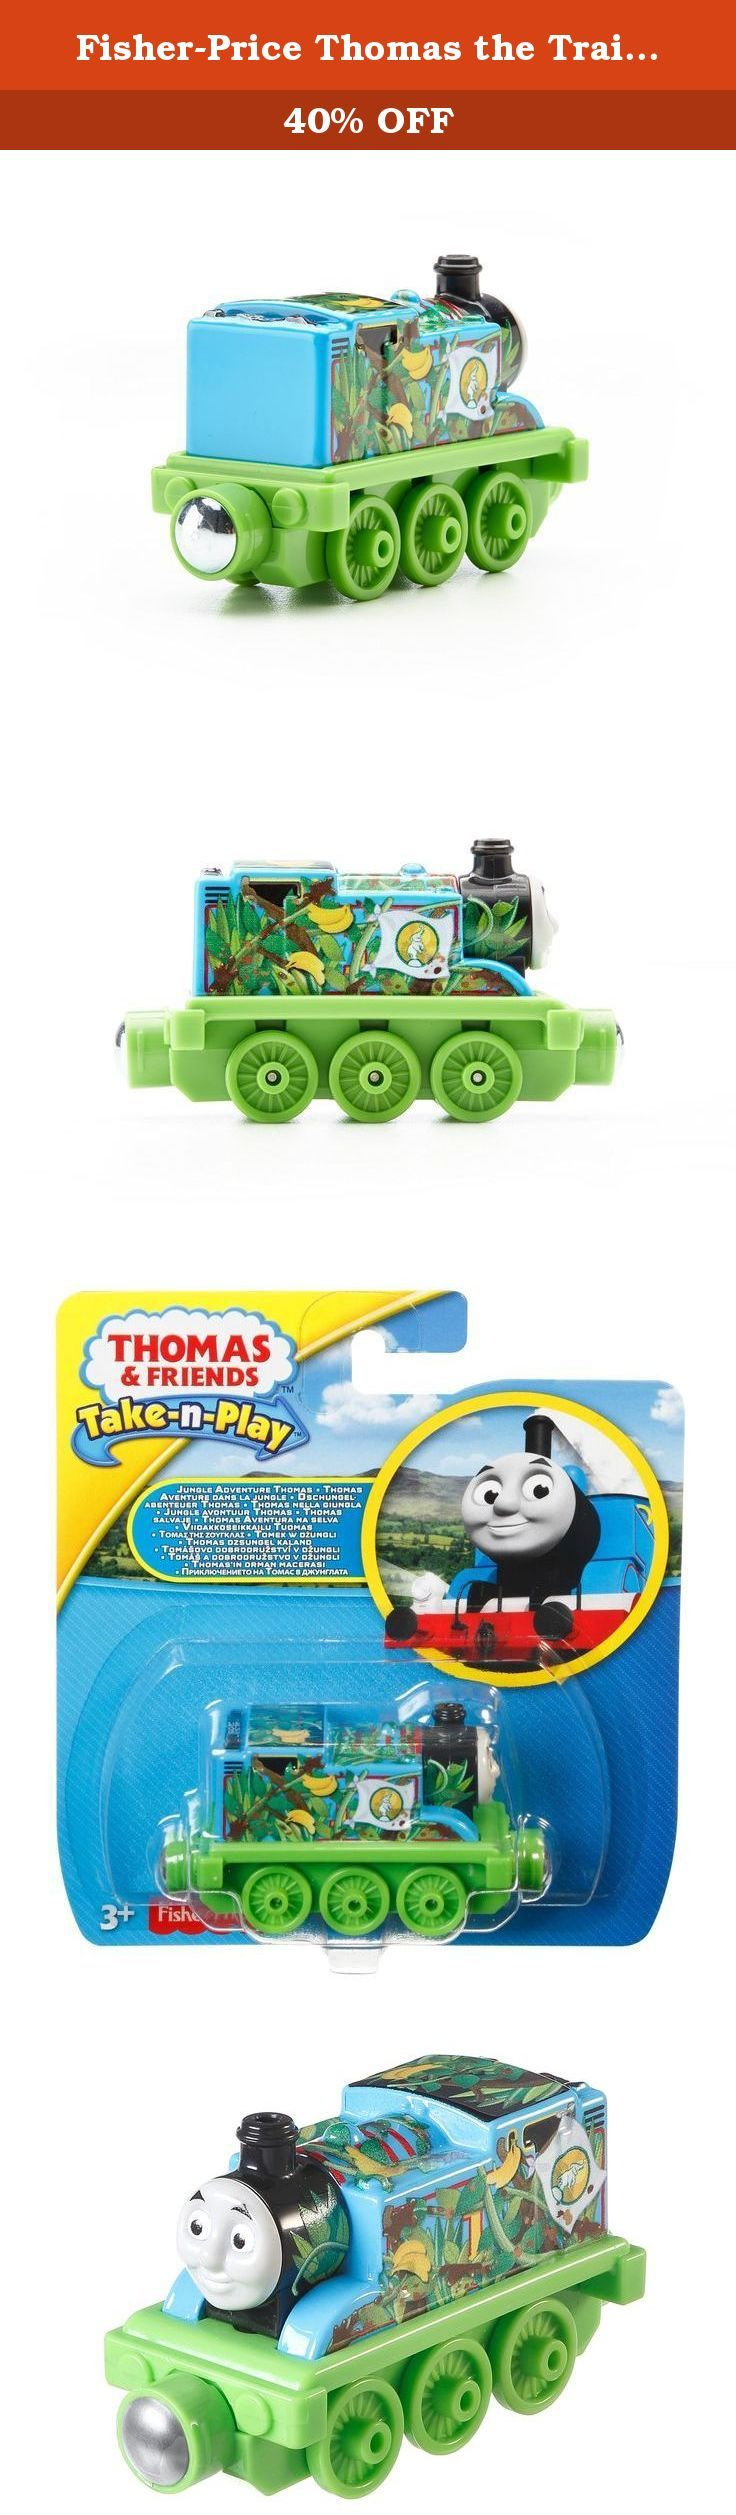 Fisher-Price Thomas the Train Take-n-Play Jungle Adventure Thomas. Thomas & Friends Take-n-Play Jungle Adventure Thomas is a durable die-cast metal engine. Thomas is decorated in a jungle theme, ready for a wild adventure! Perfect for Take-n-Play Portable Fold-Out Playsets (sold separately and subject to availability).